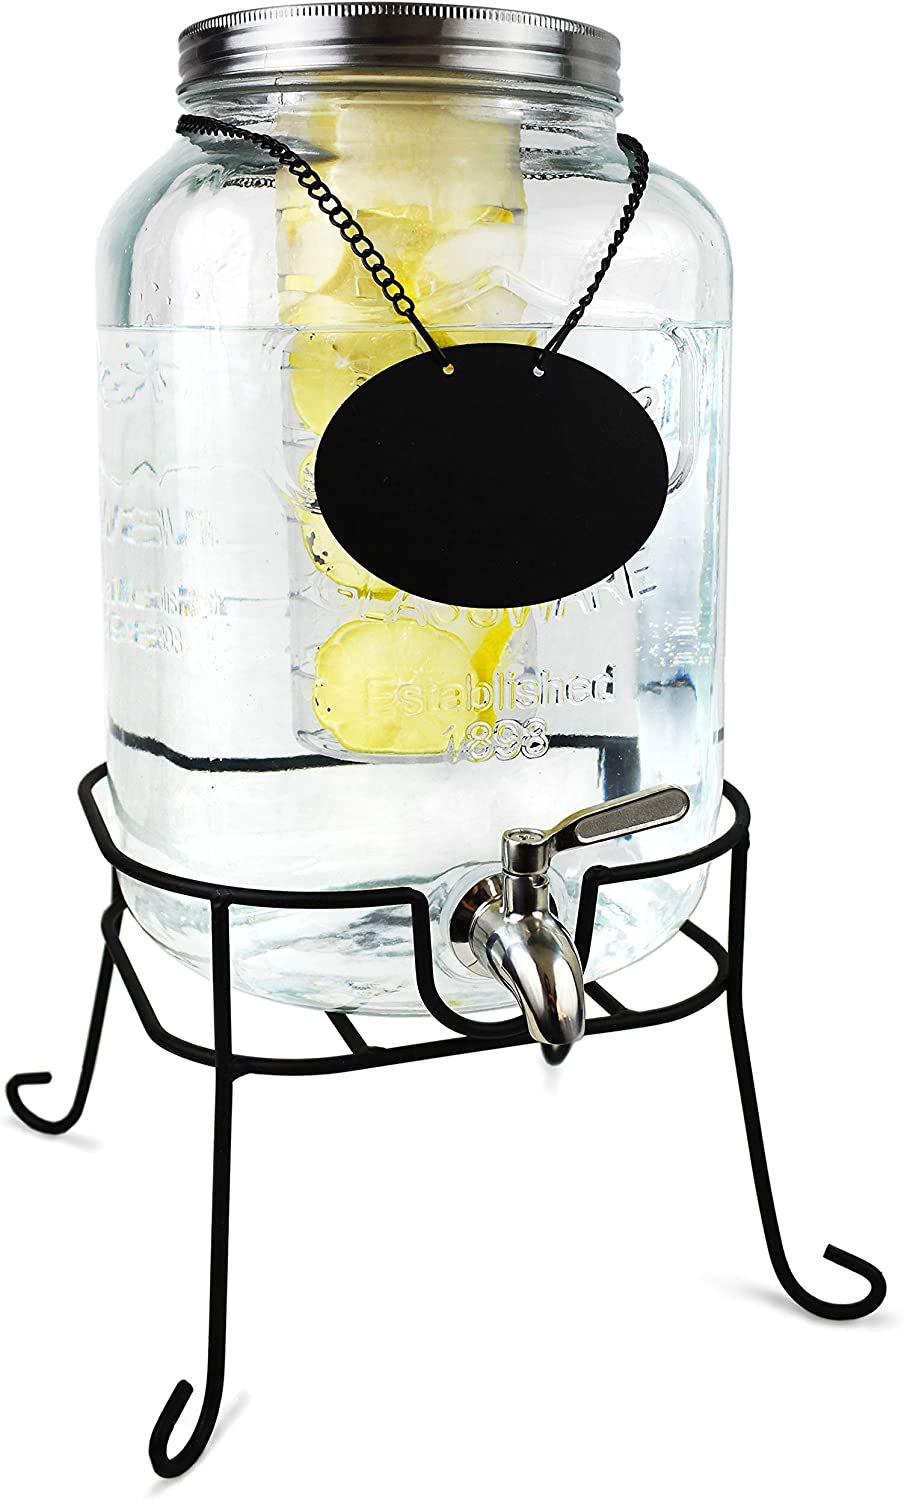 Glass Beverage Dispenser with Fruit Infuser – Ice Cold Drink Container Metal Stand Set Chalkboard Outdoor Server - 2 Gallon Stainless Steel Spigot